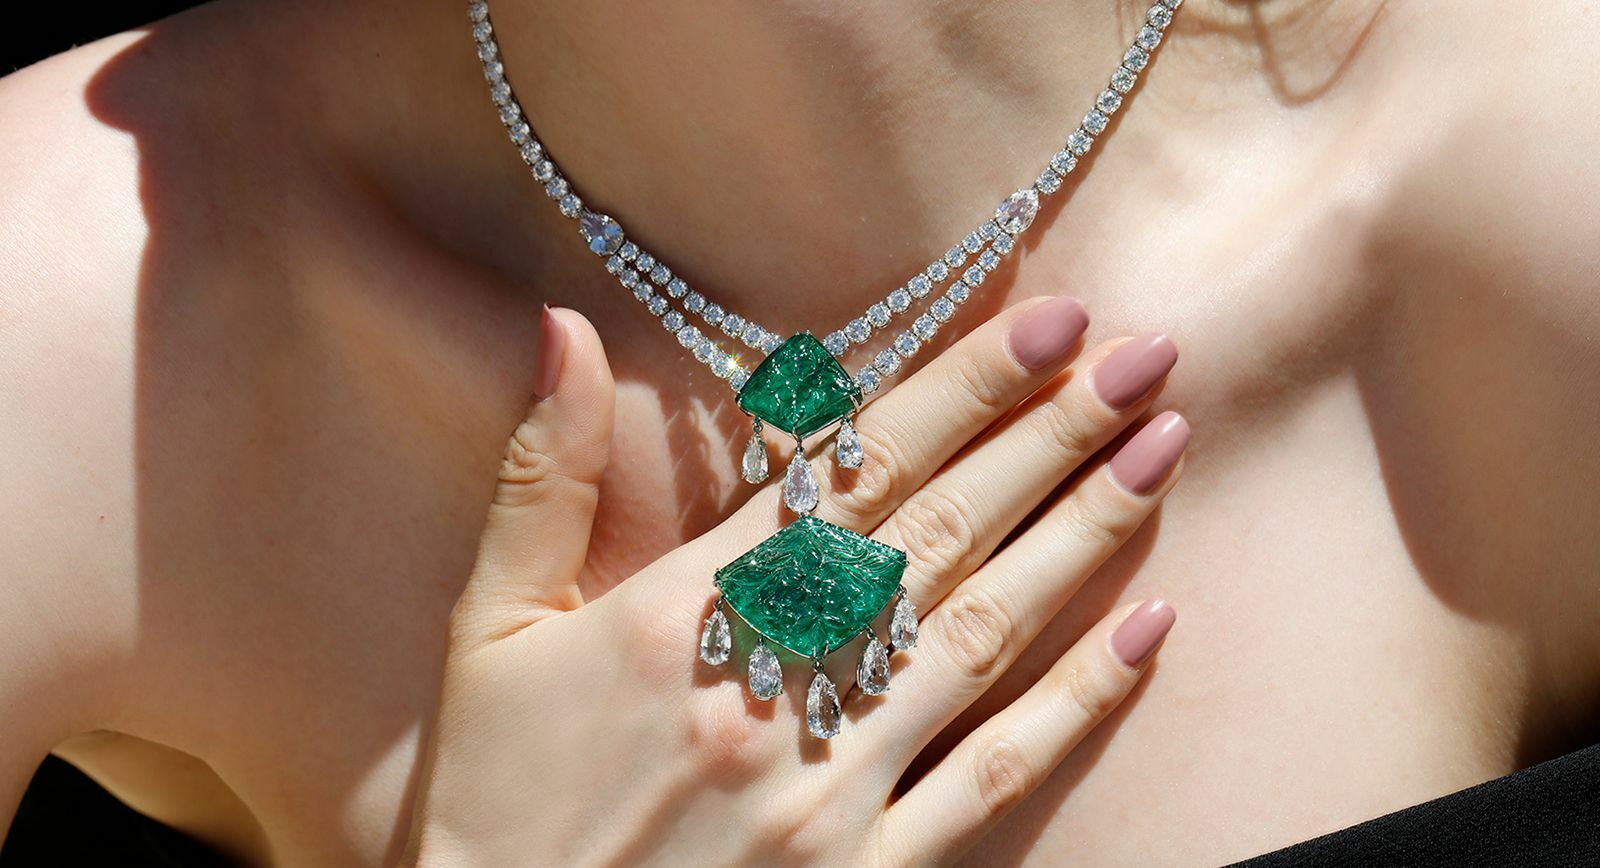 Bayco carved emerald necklace